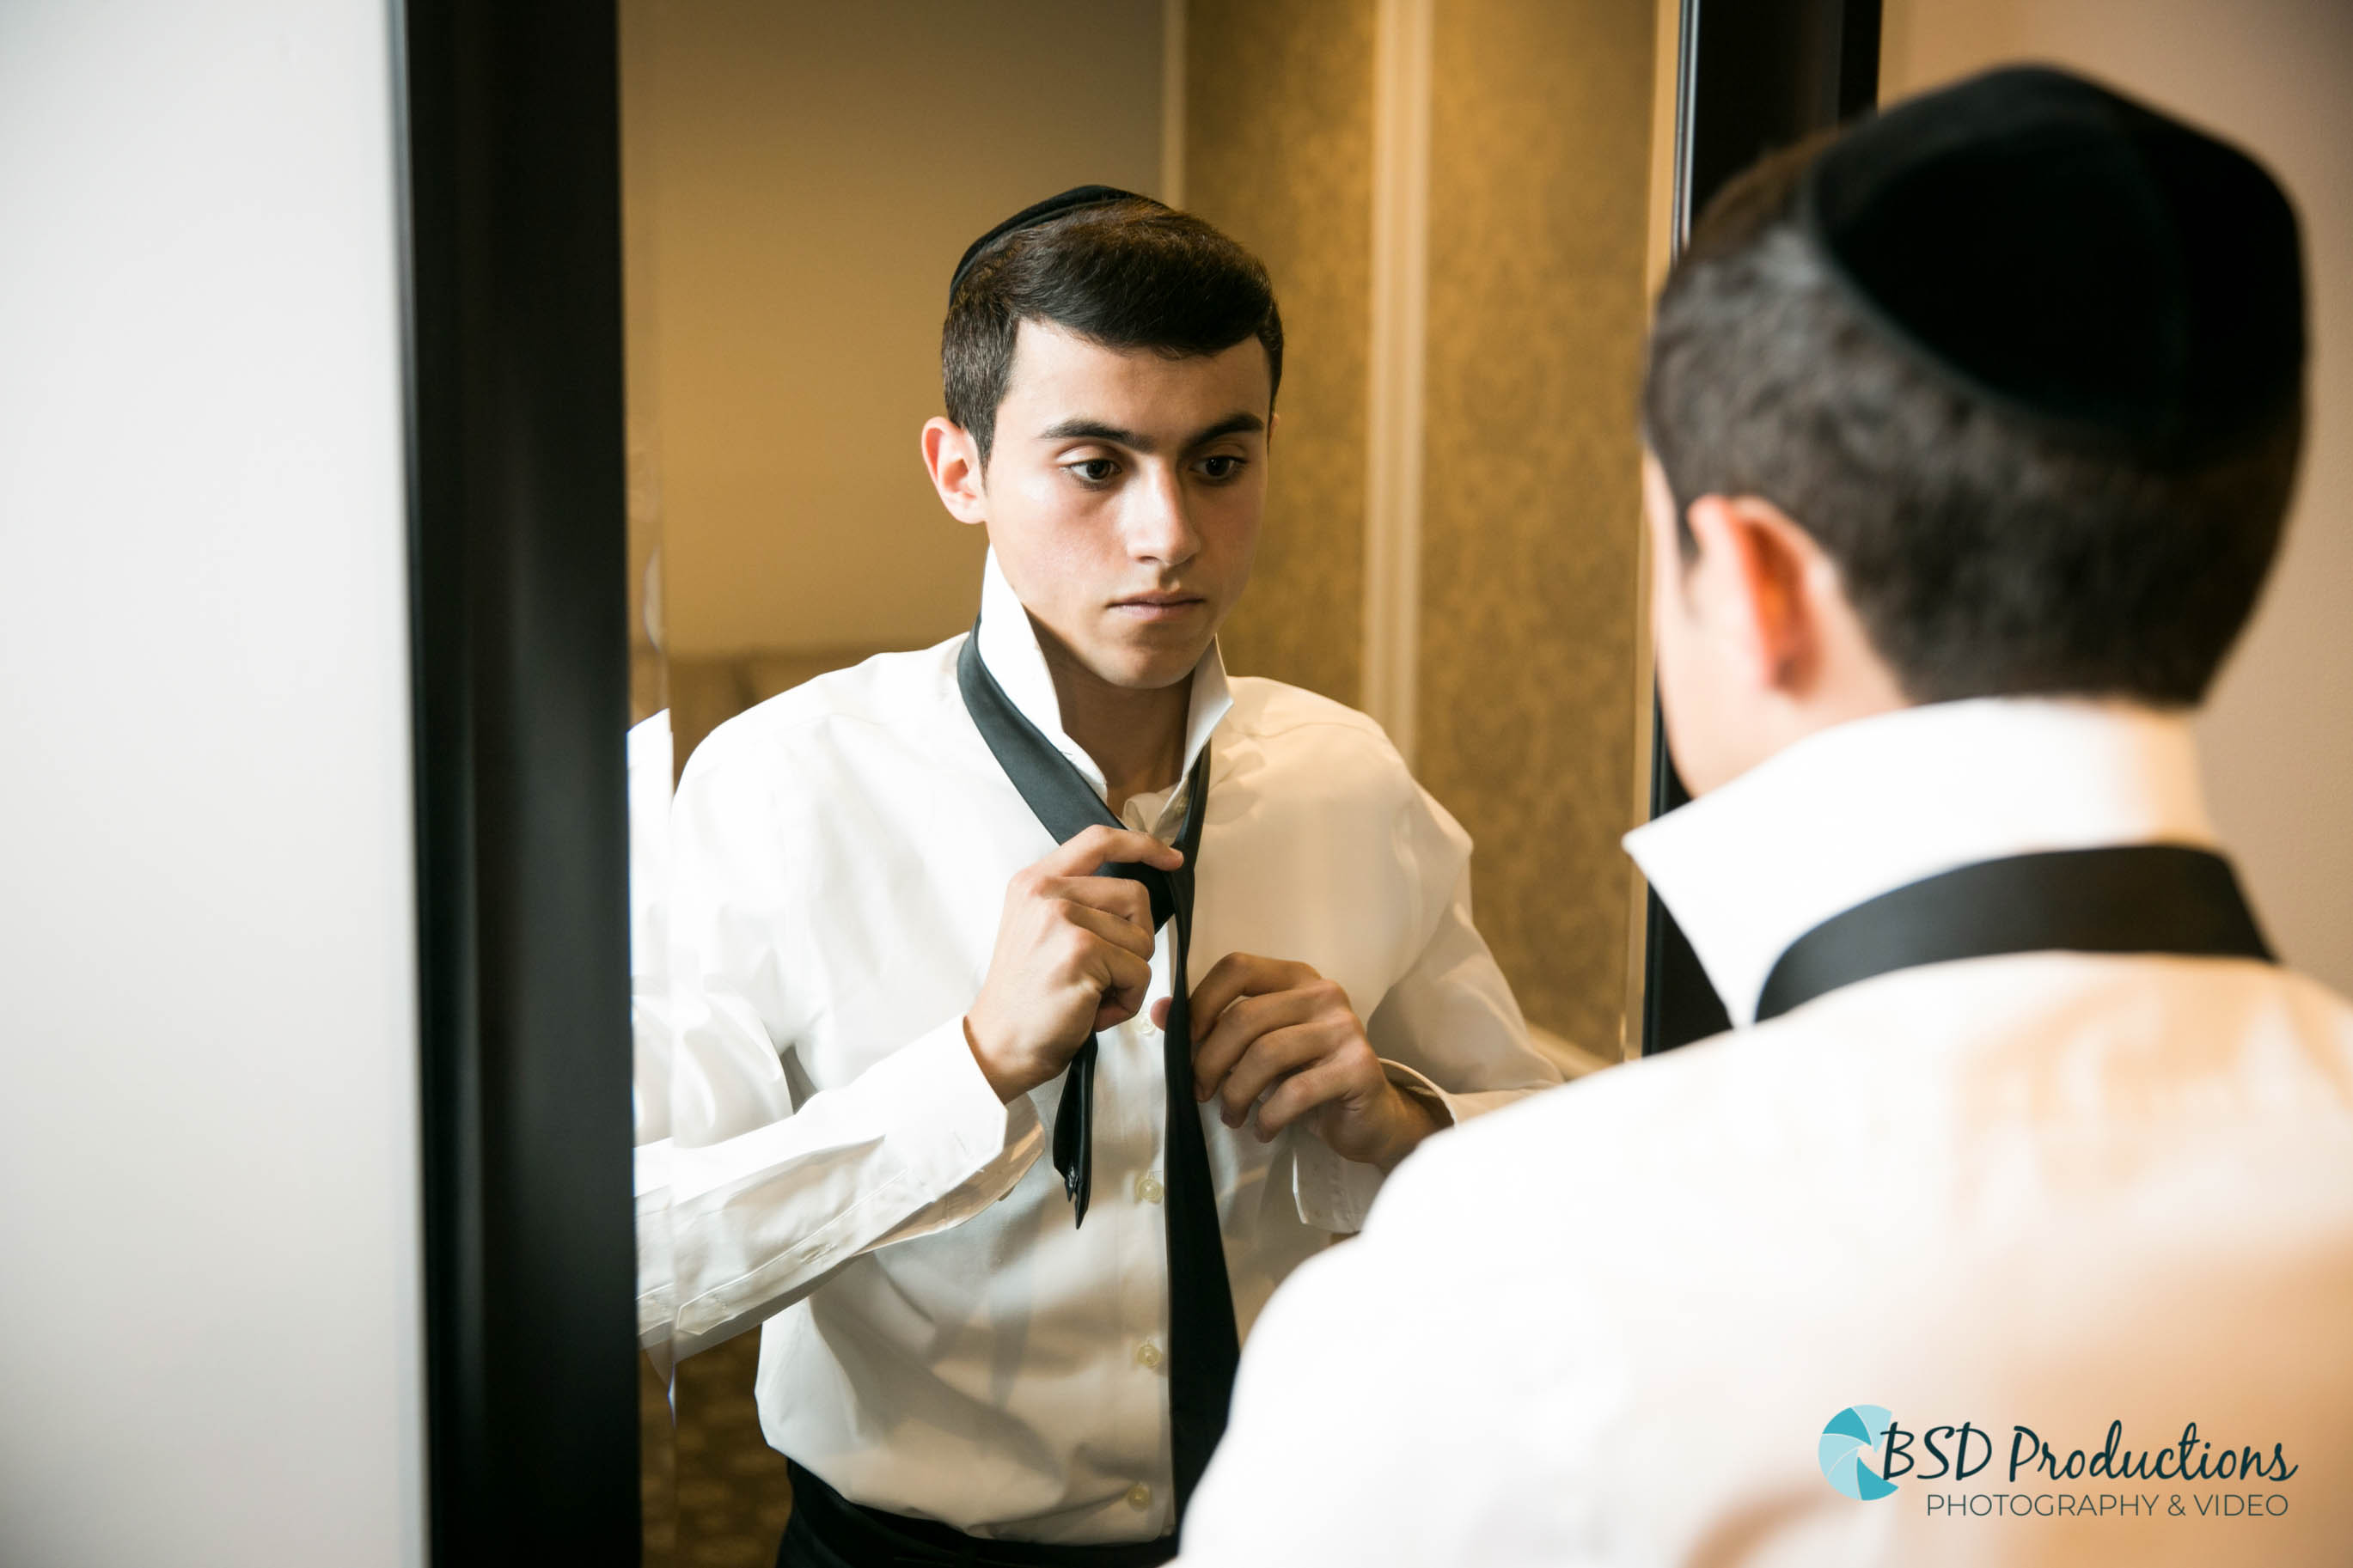 UH5A4416 Wedding – BSD Productions Photography